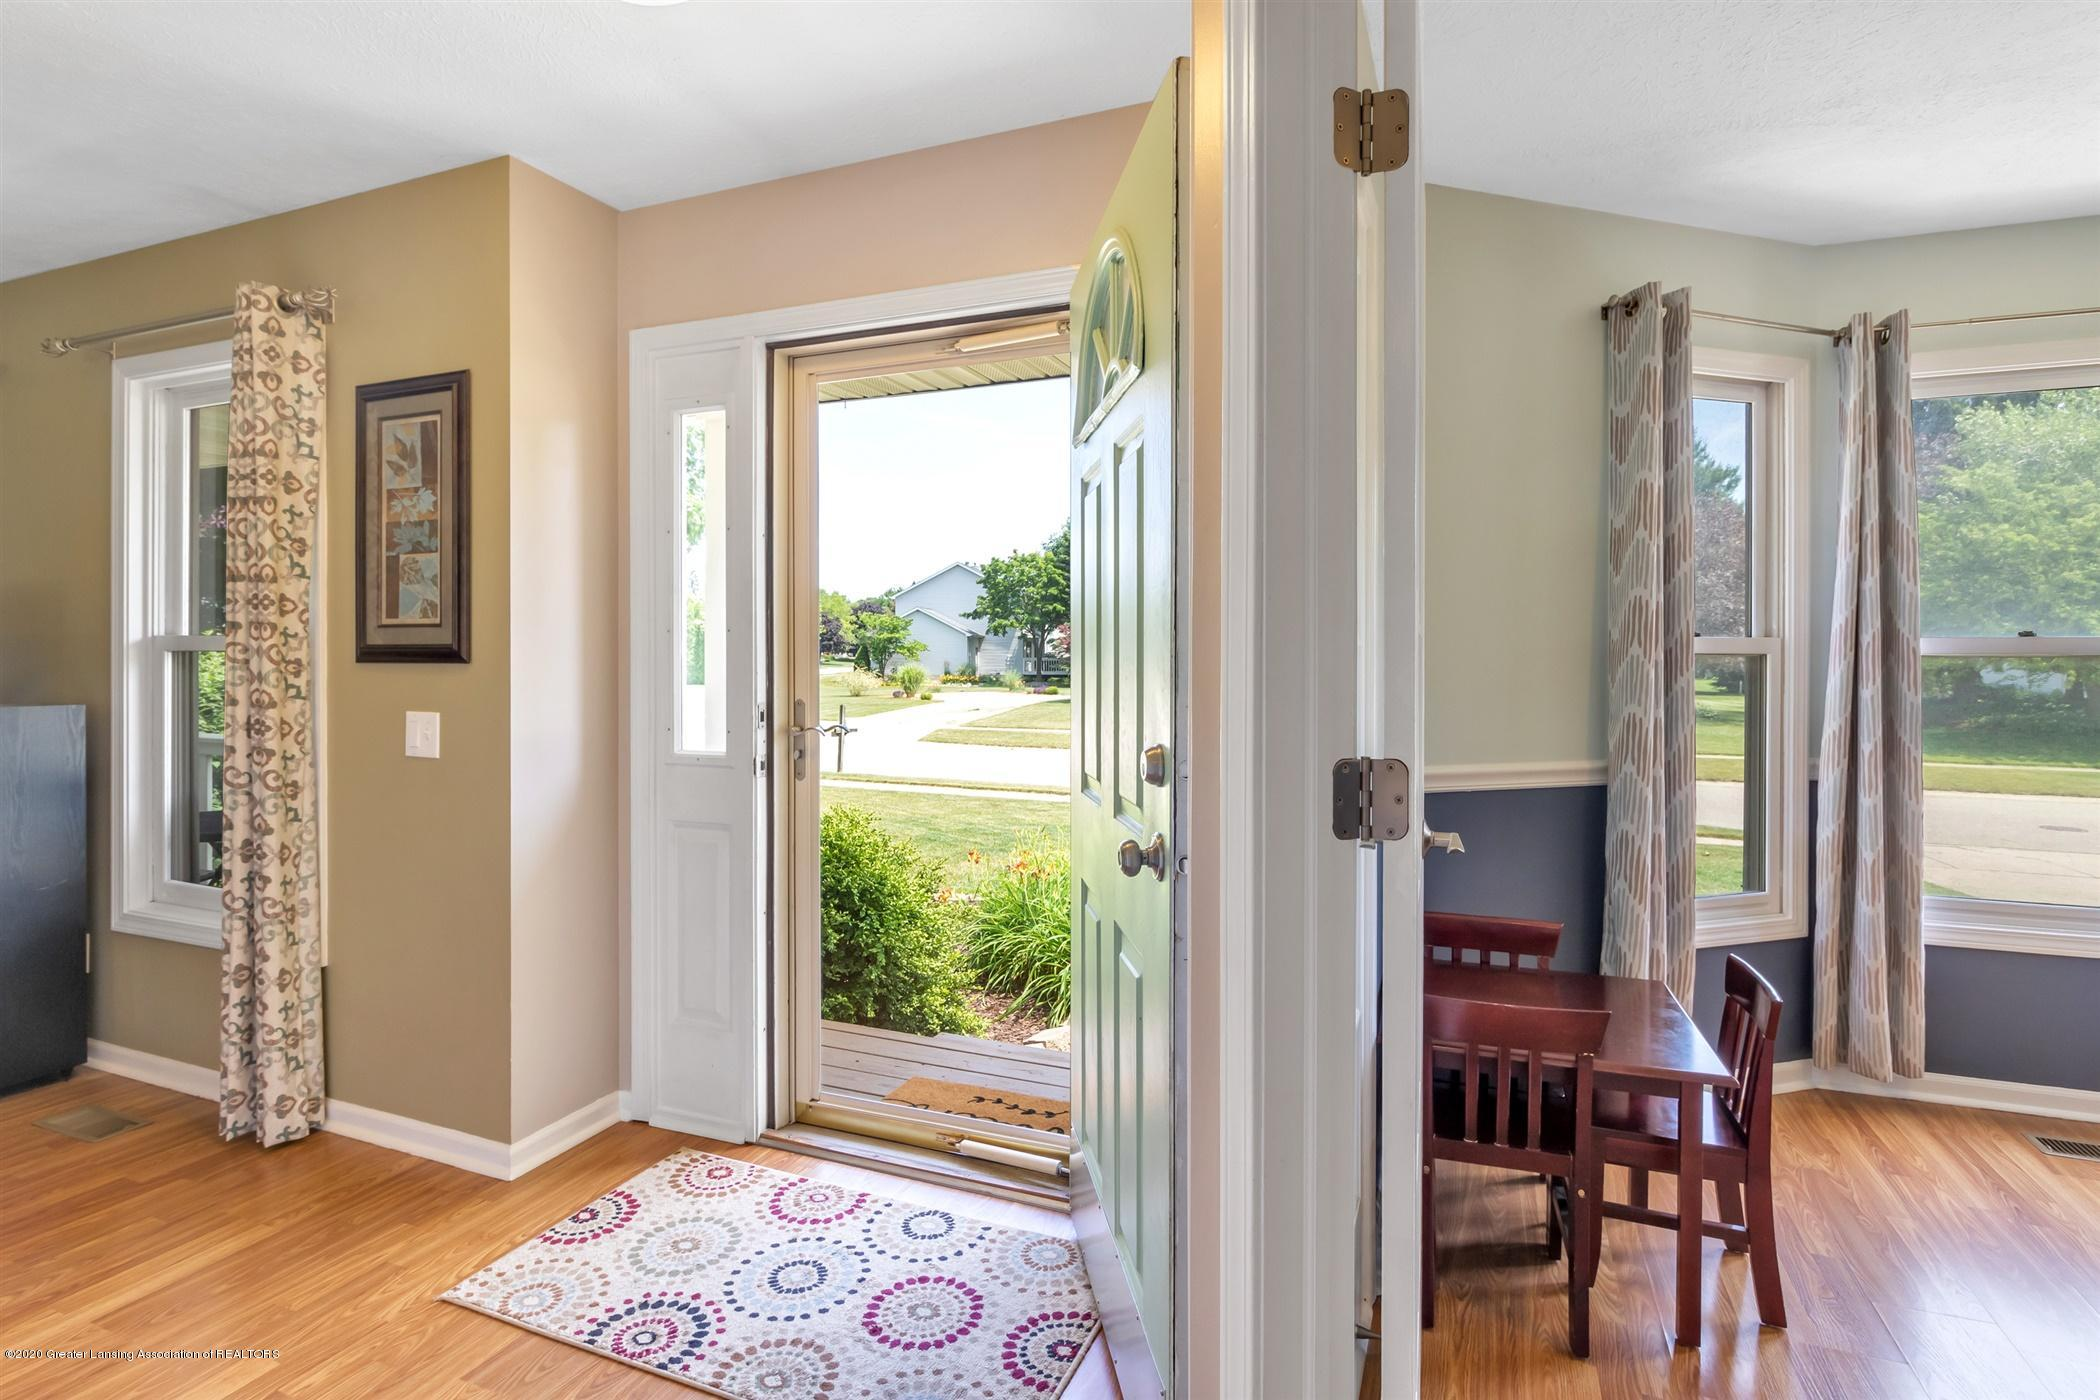 2945 Whistlewood Way - 06-2945Whistlewood-WindowStill-Real - 6